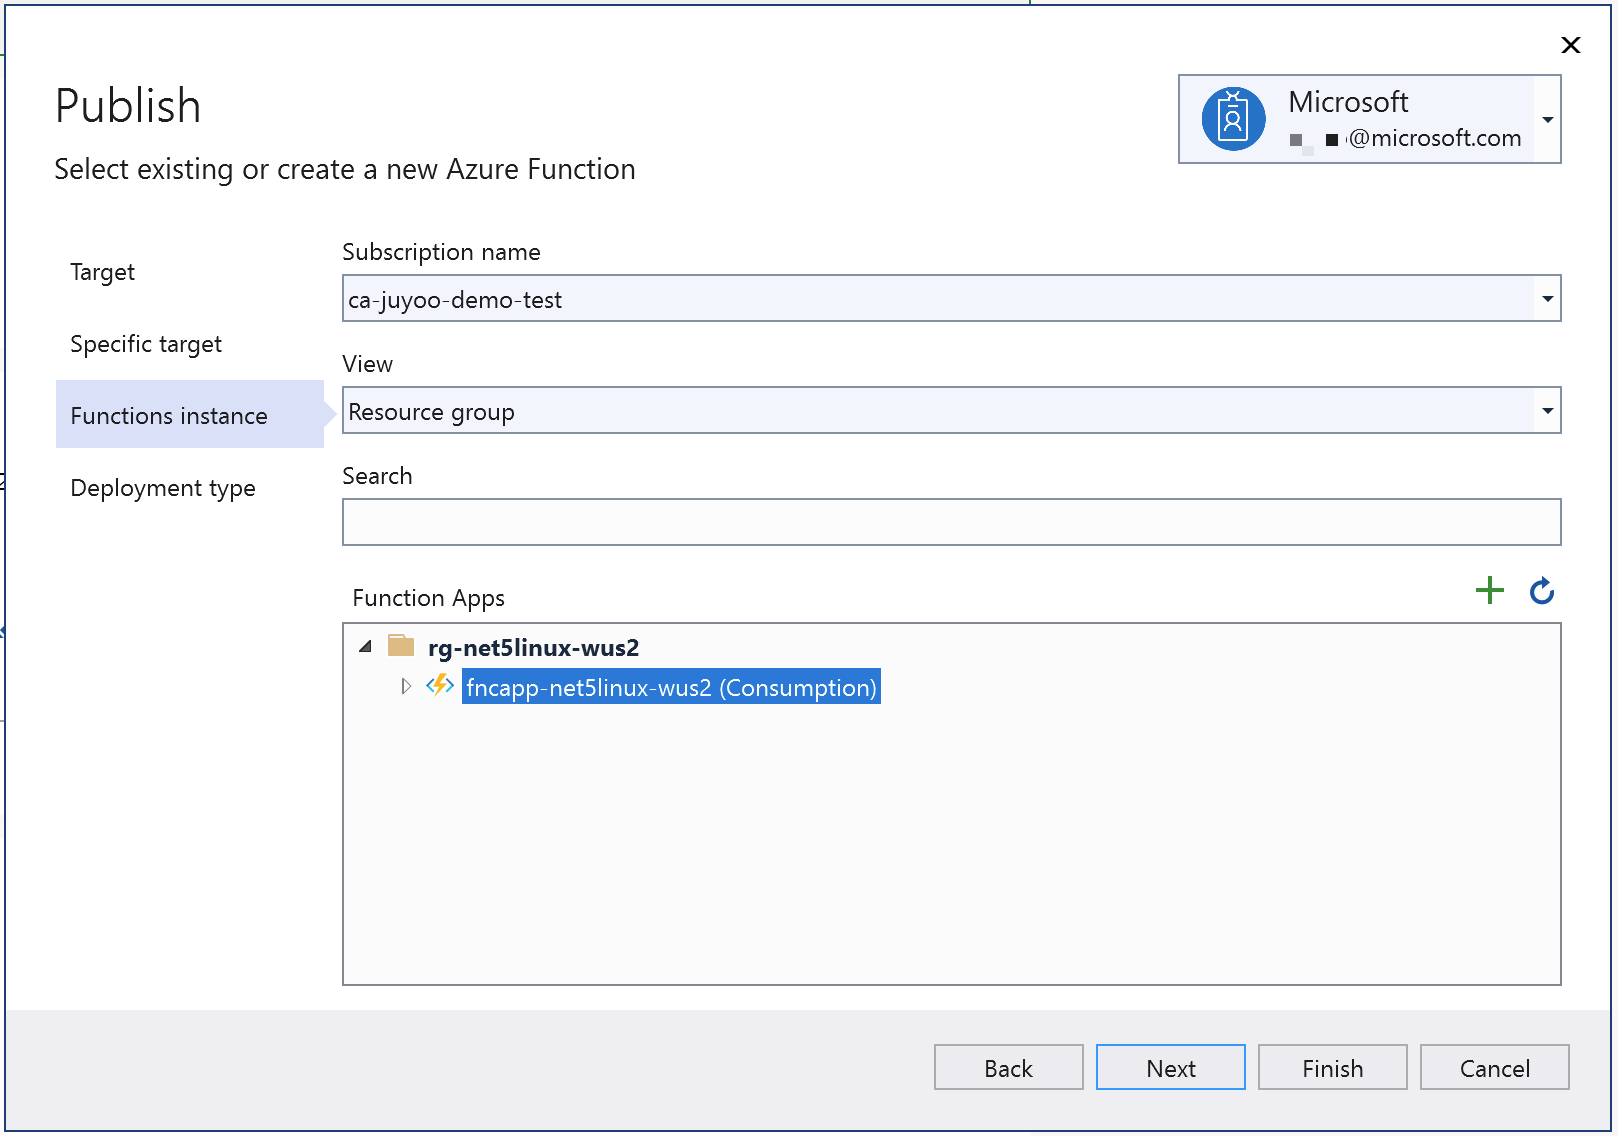 Choose existing instance